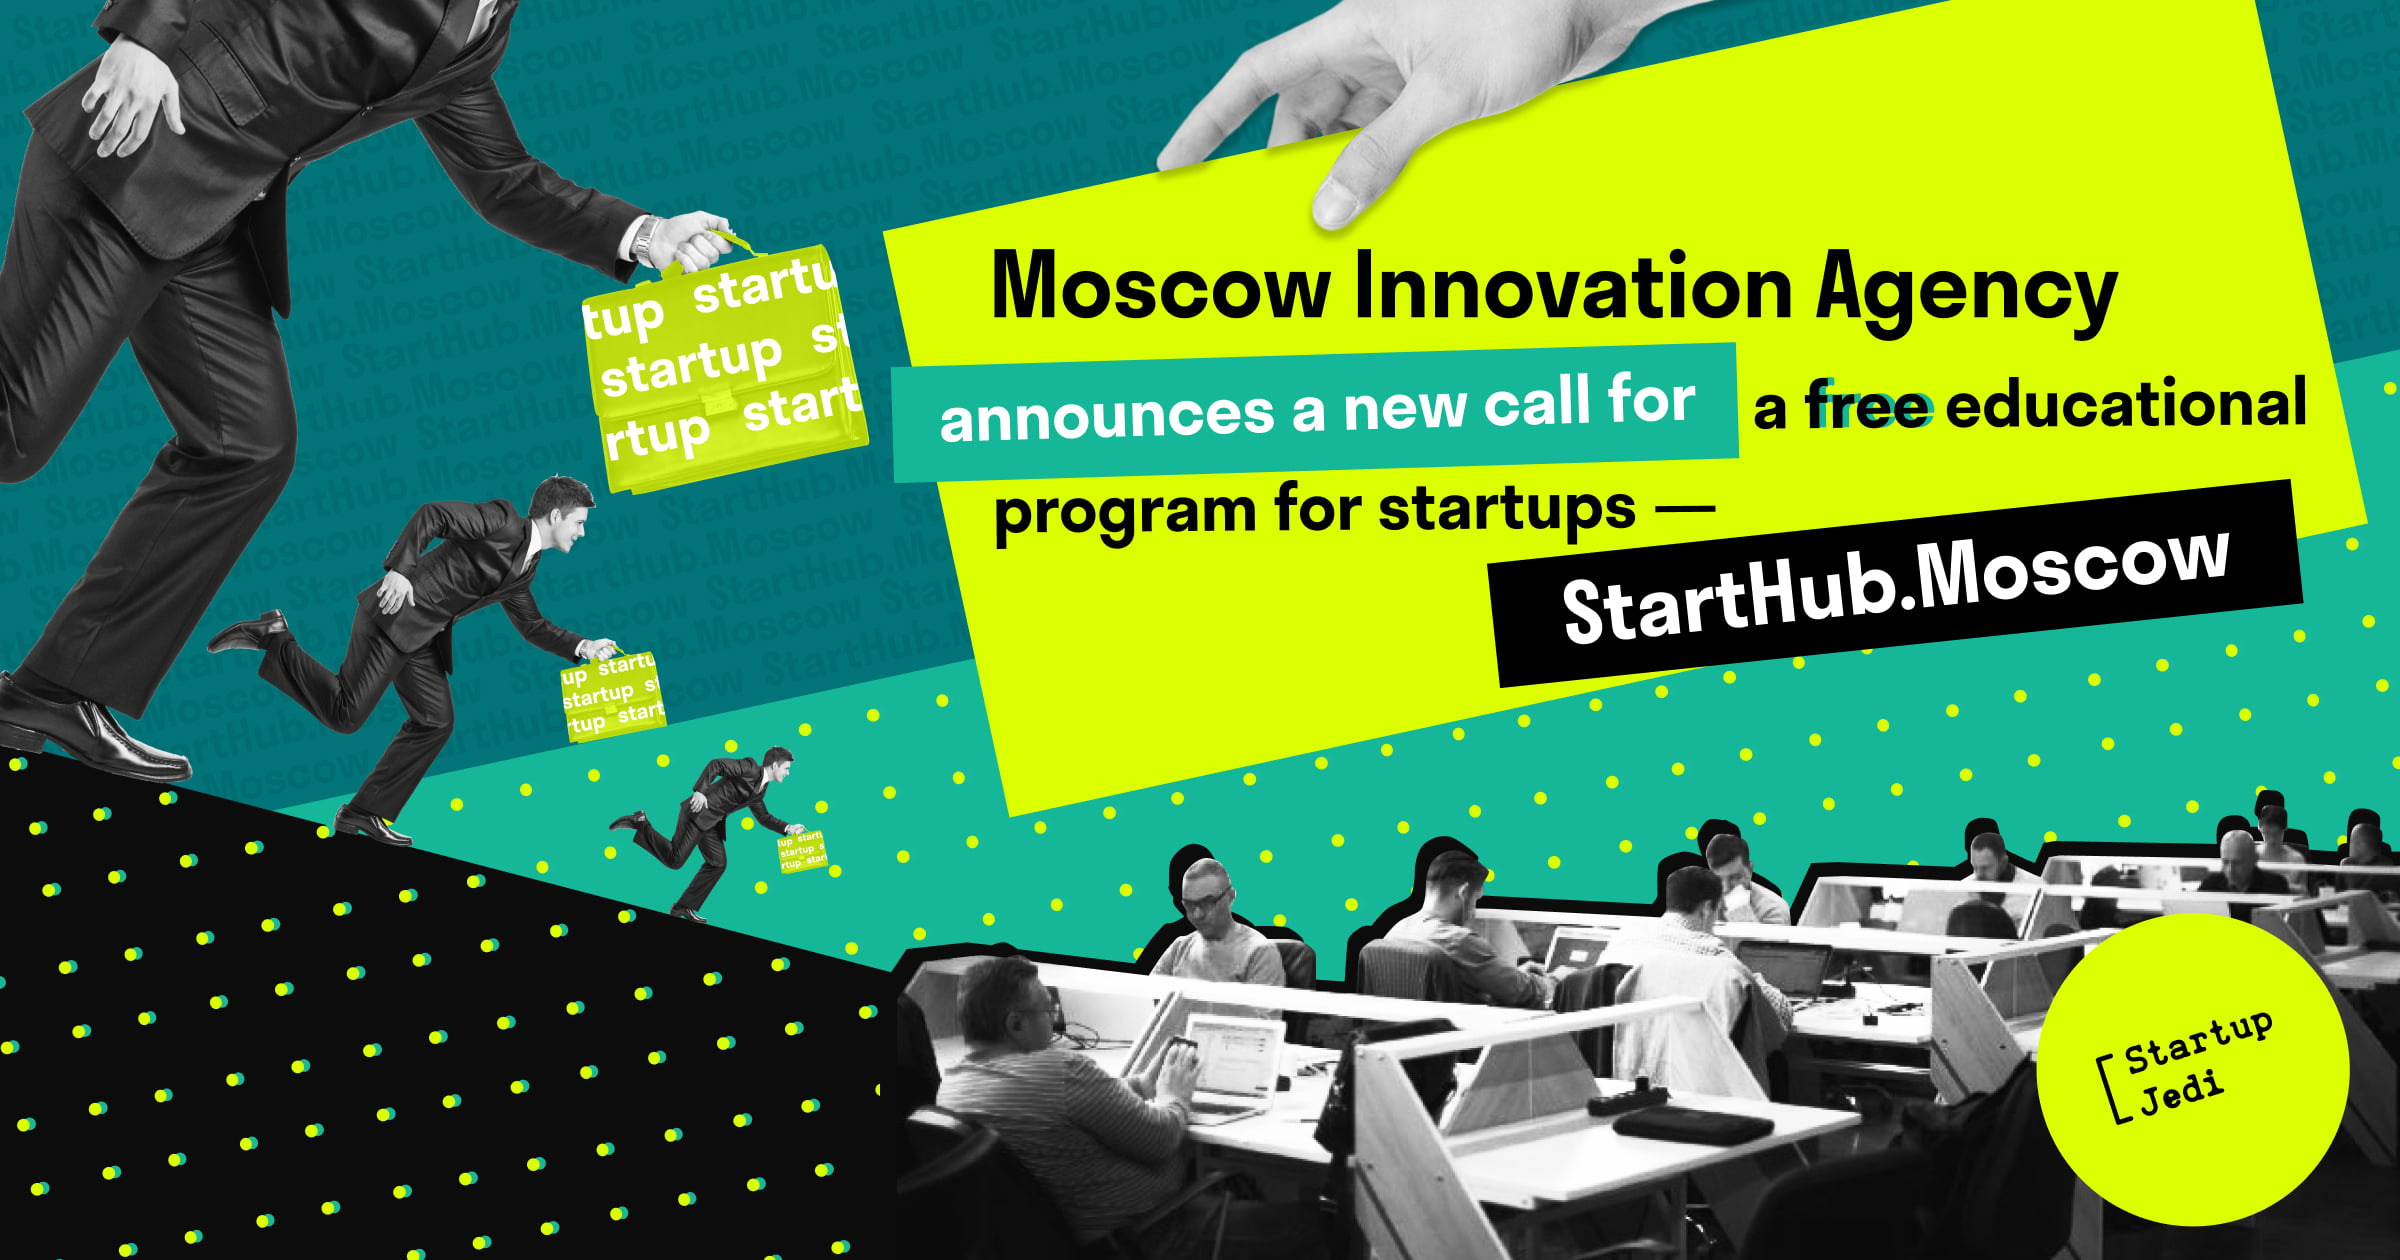 Moscow Innovation Agency announces a new call for a free educational program for startups —  StartHub.Moscow